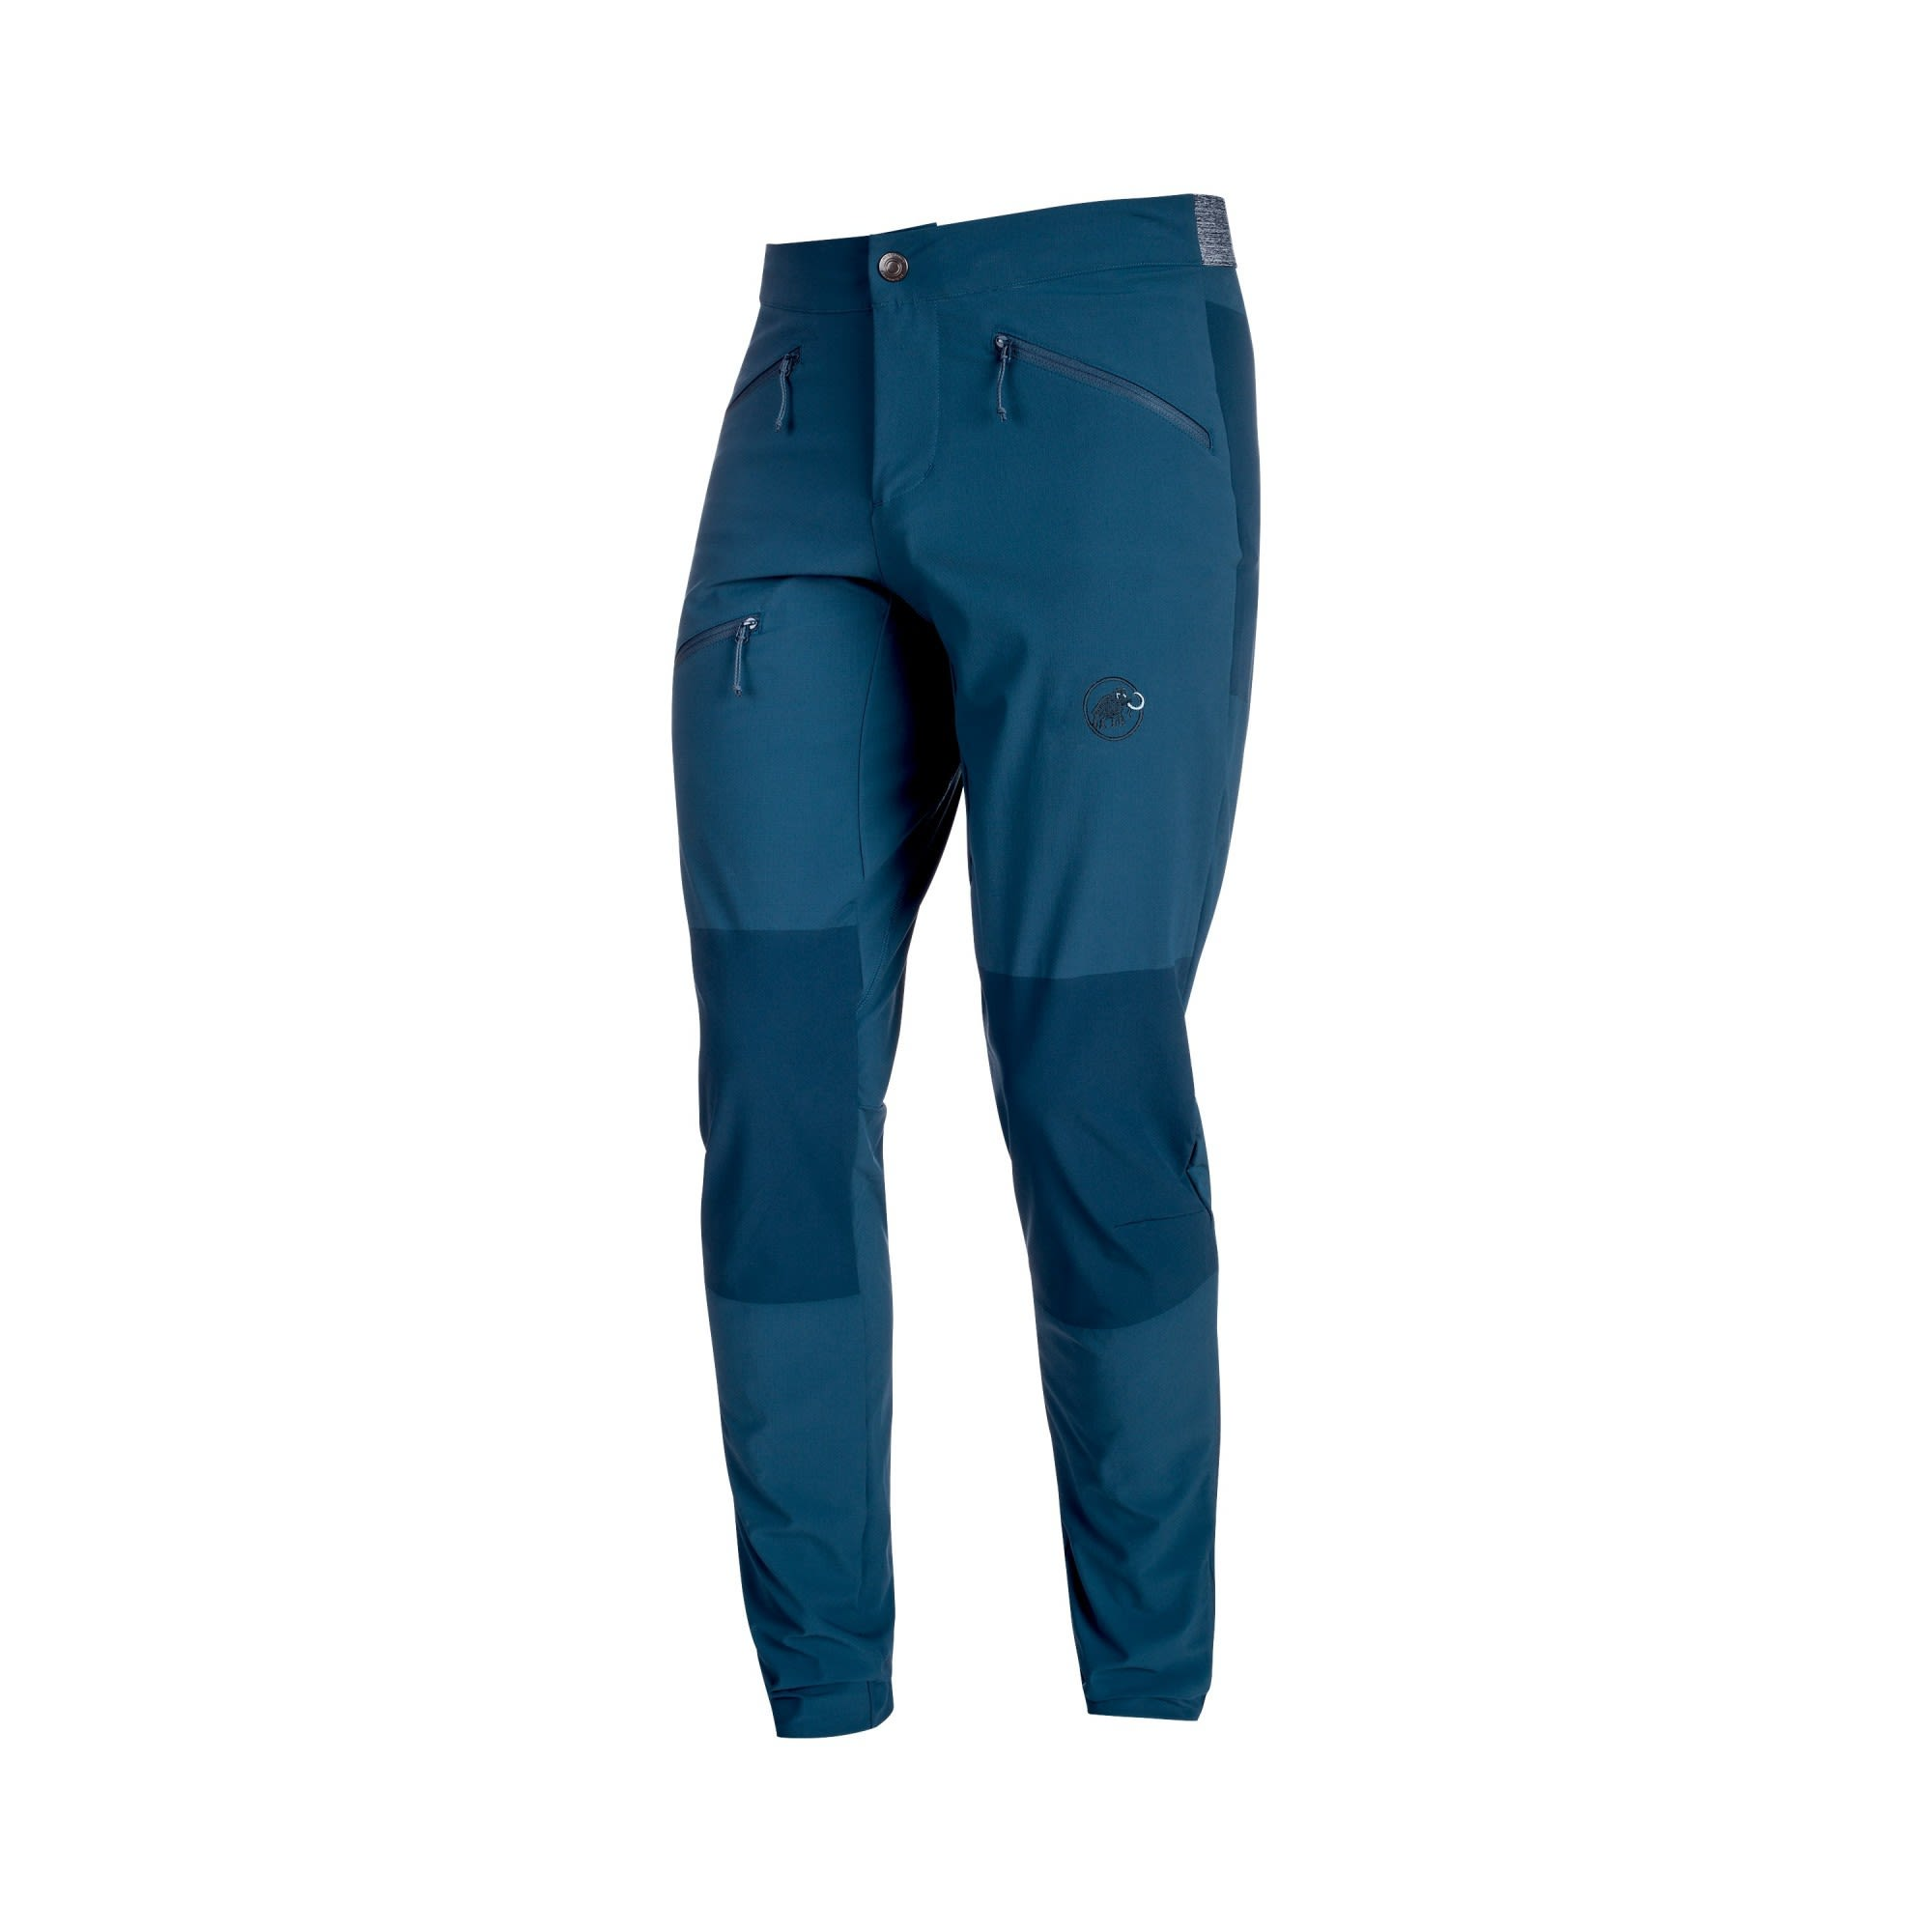 Mammut Pordoi SO Pants Blau, Male Hose, 52